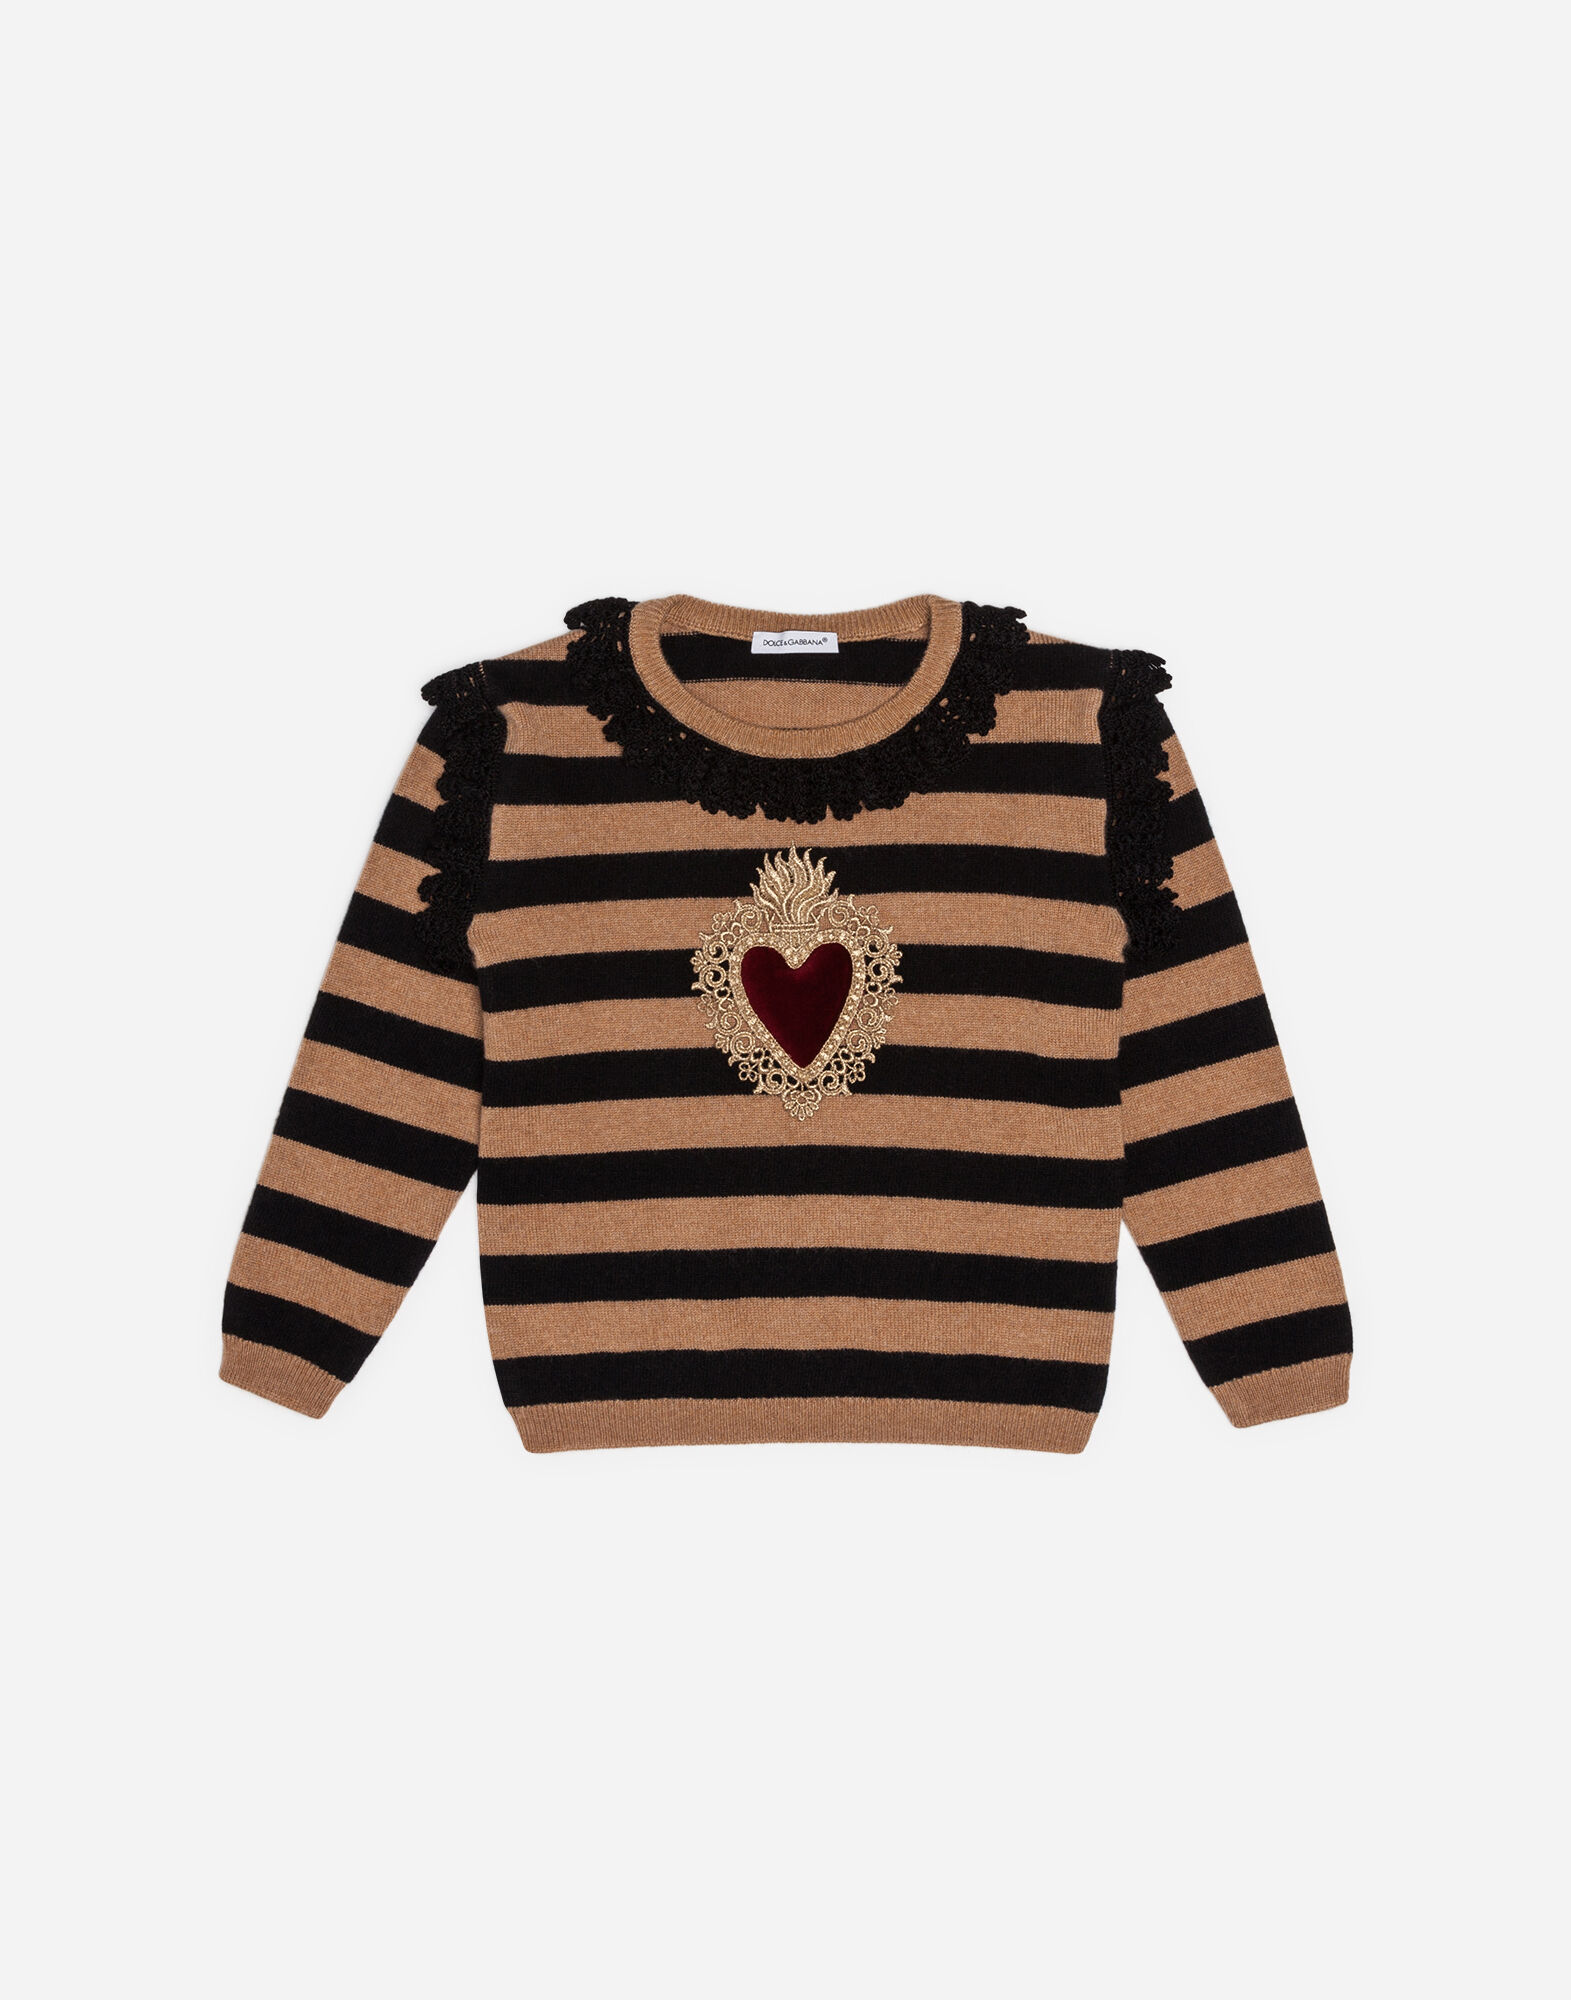 WOOL AND CASHMERE BLEND SWEATER WITH EMBROIDERY